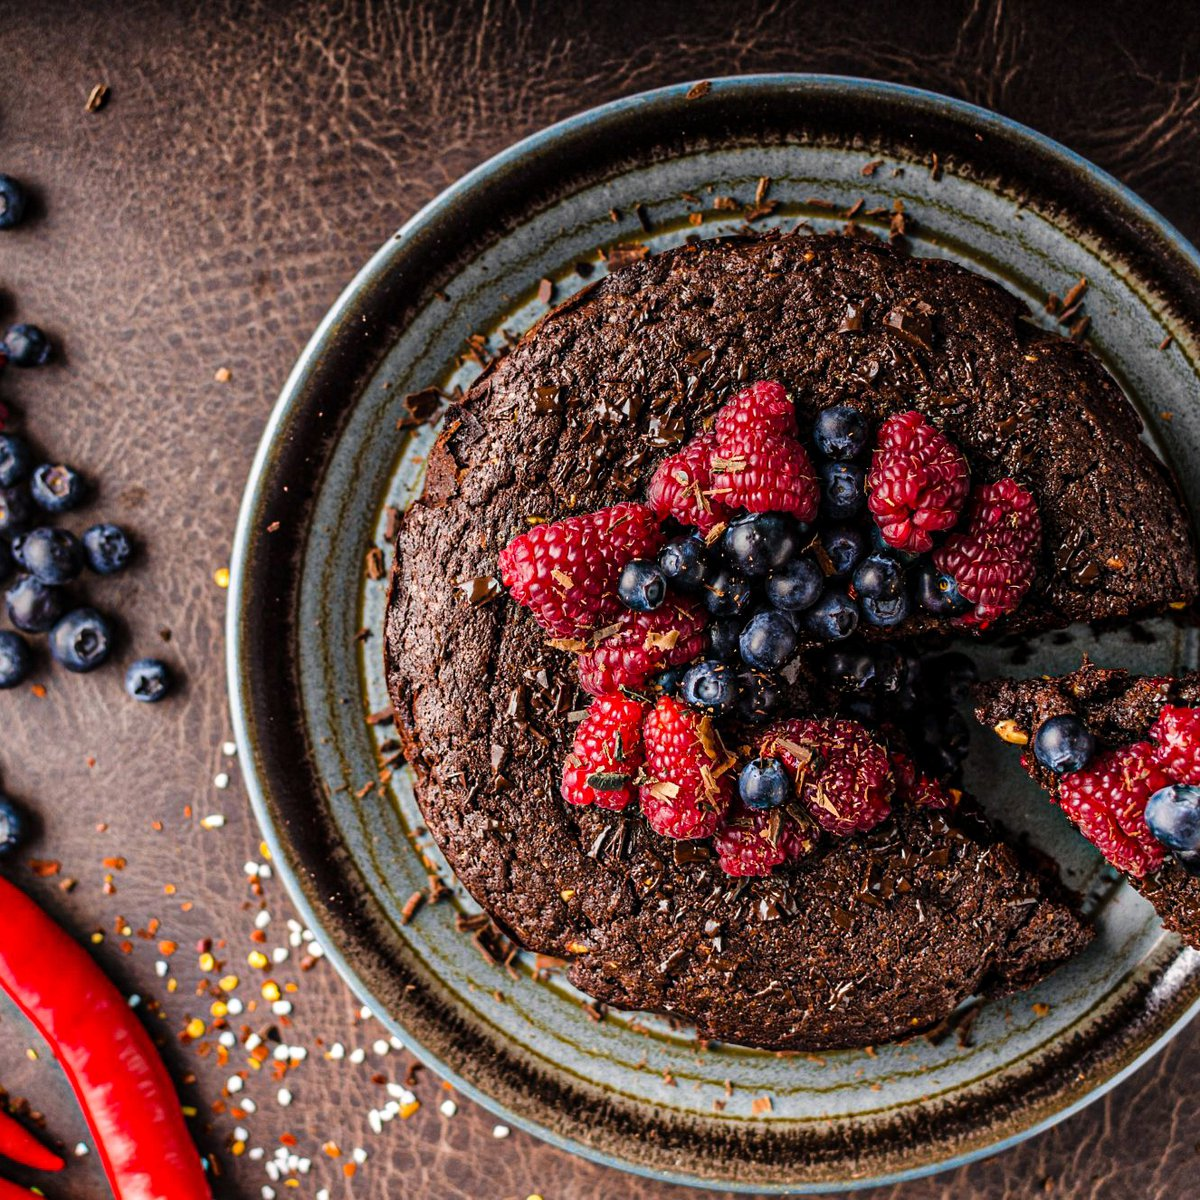 Chocolate brownie cake with chili and fresh berries